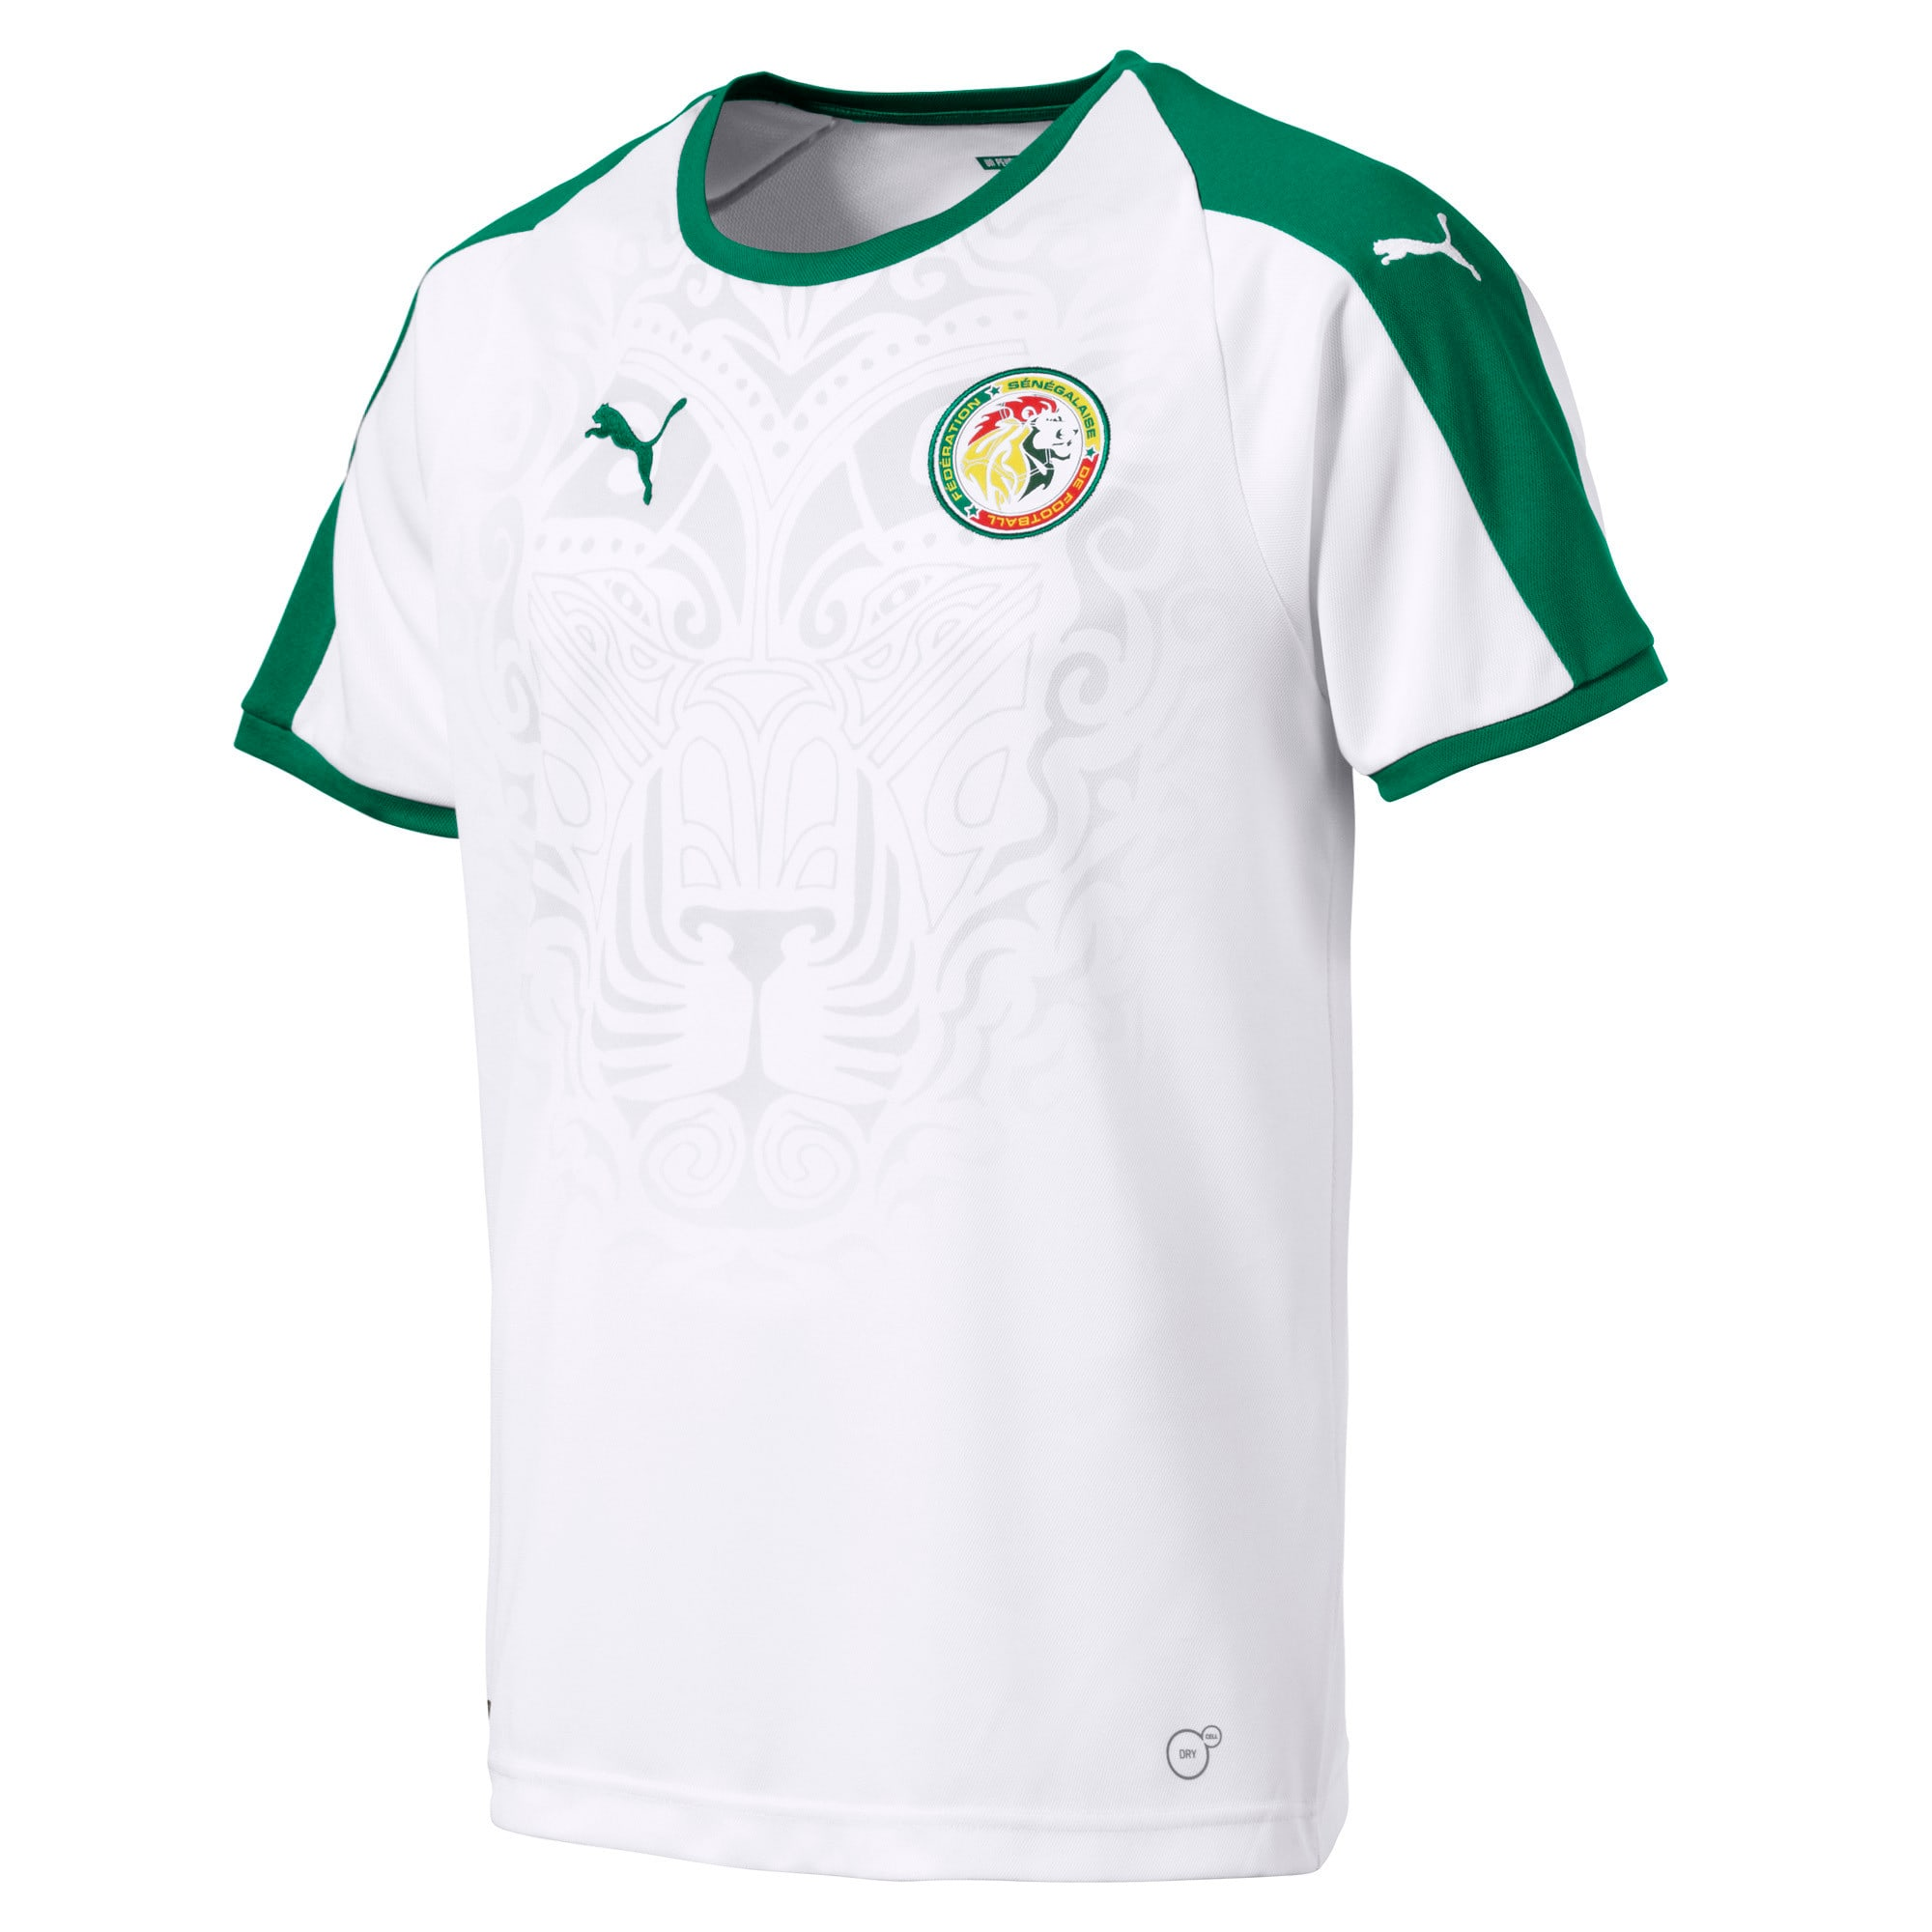 Thumbnail 1 of Senegal Home Replica Jersey, Puma White-Pepper Green, medium